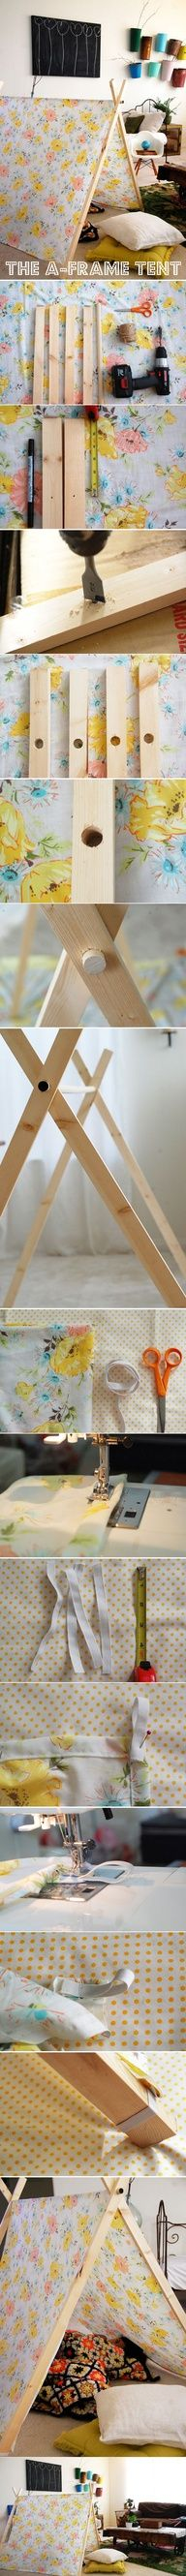 DIY  a frame tent. Folds up neatly to store after the kids play fort in the living room